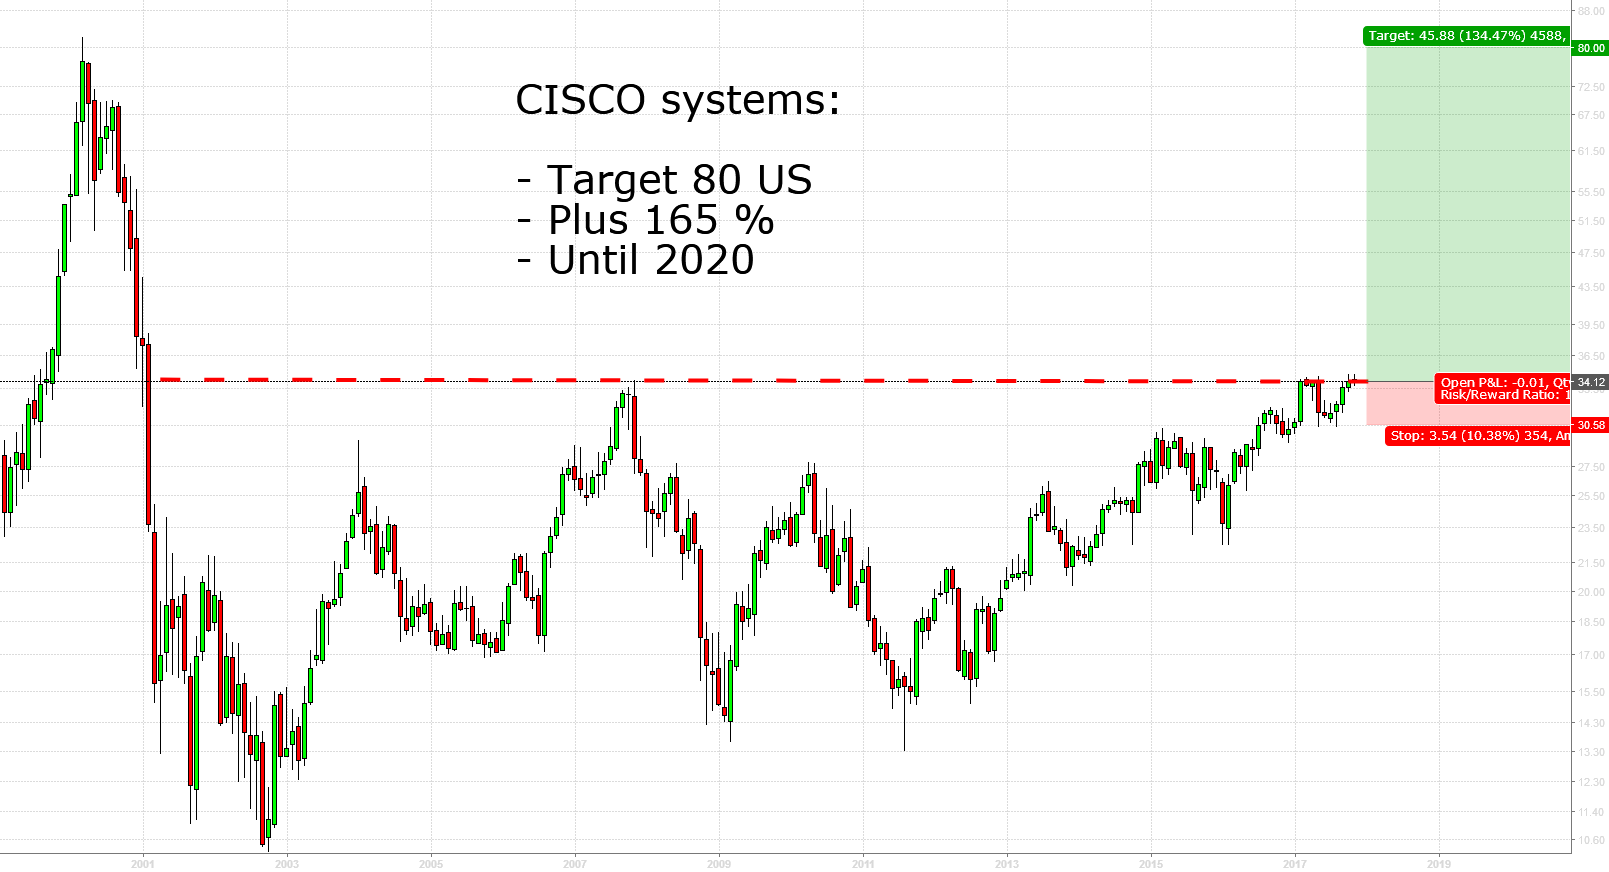 CISCO systems: Target 80 USD, net gain 56 USD or 165%